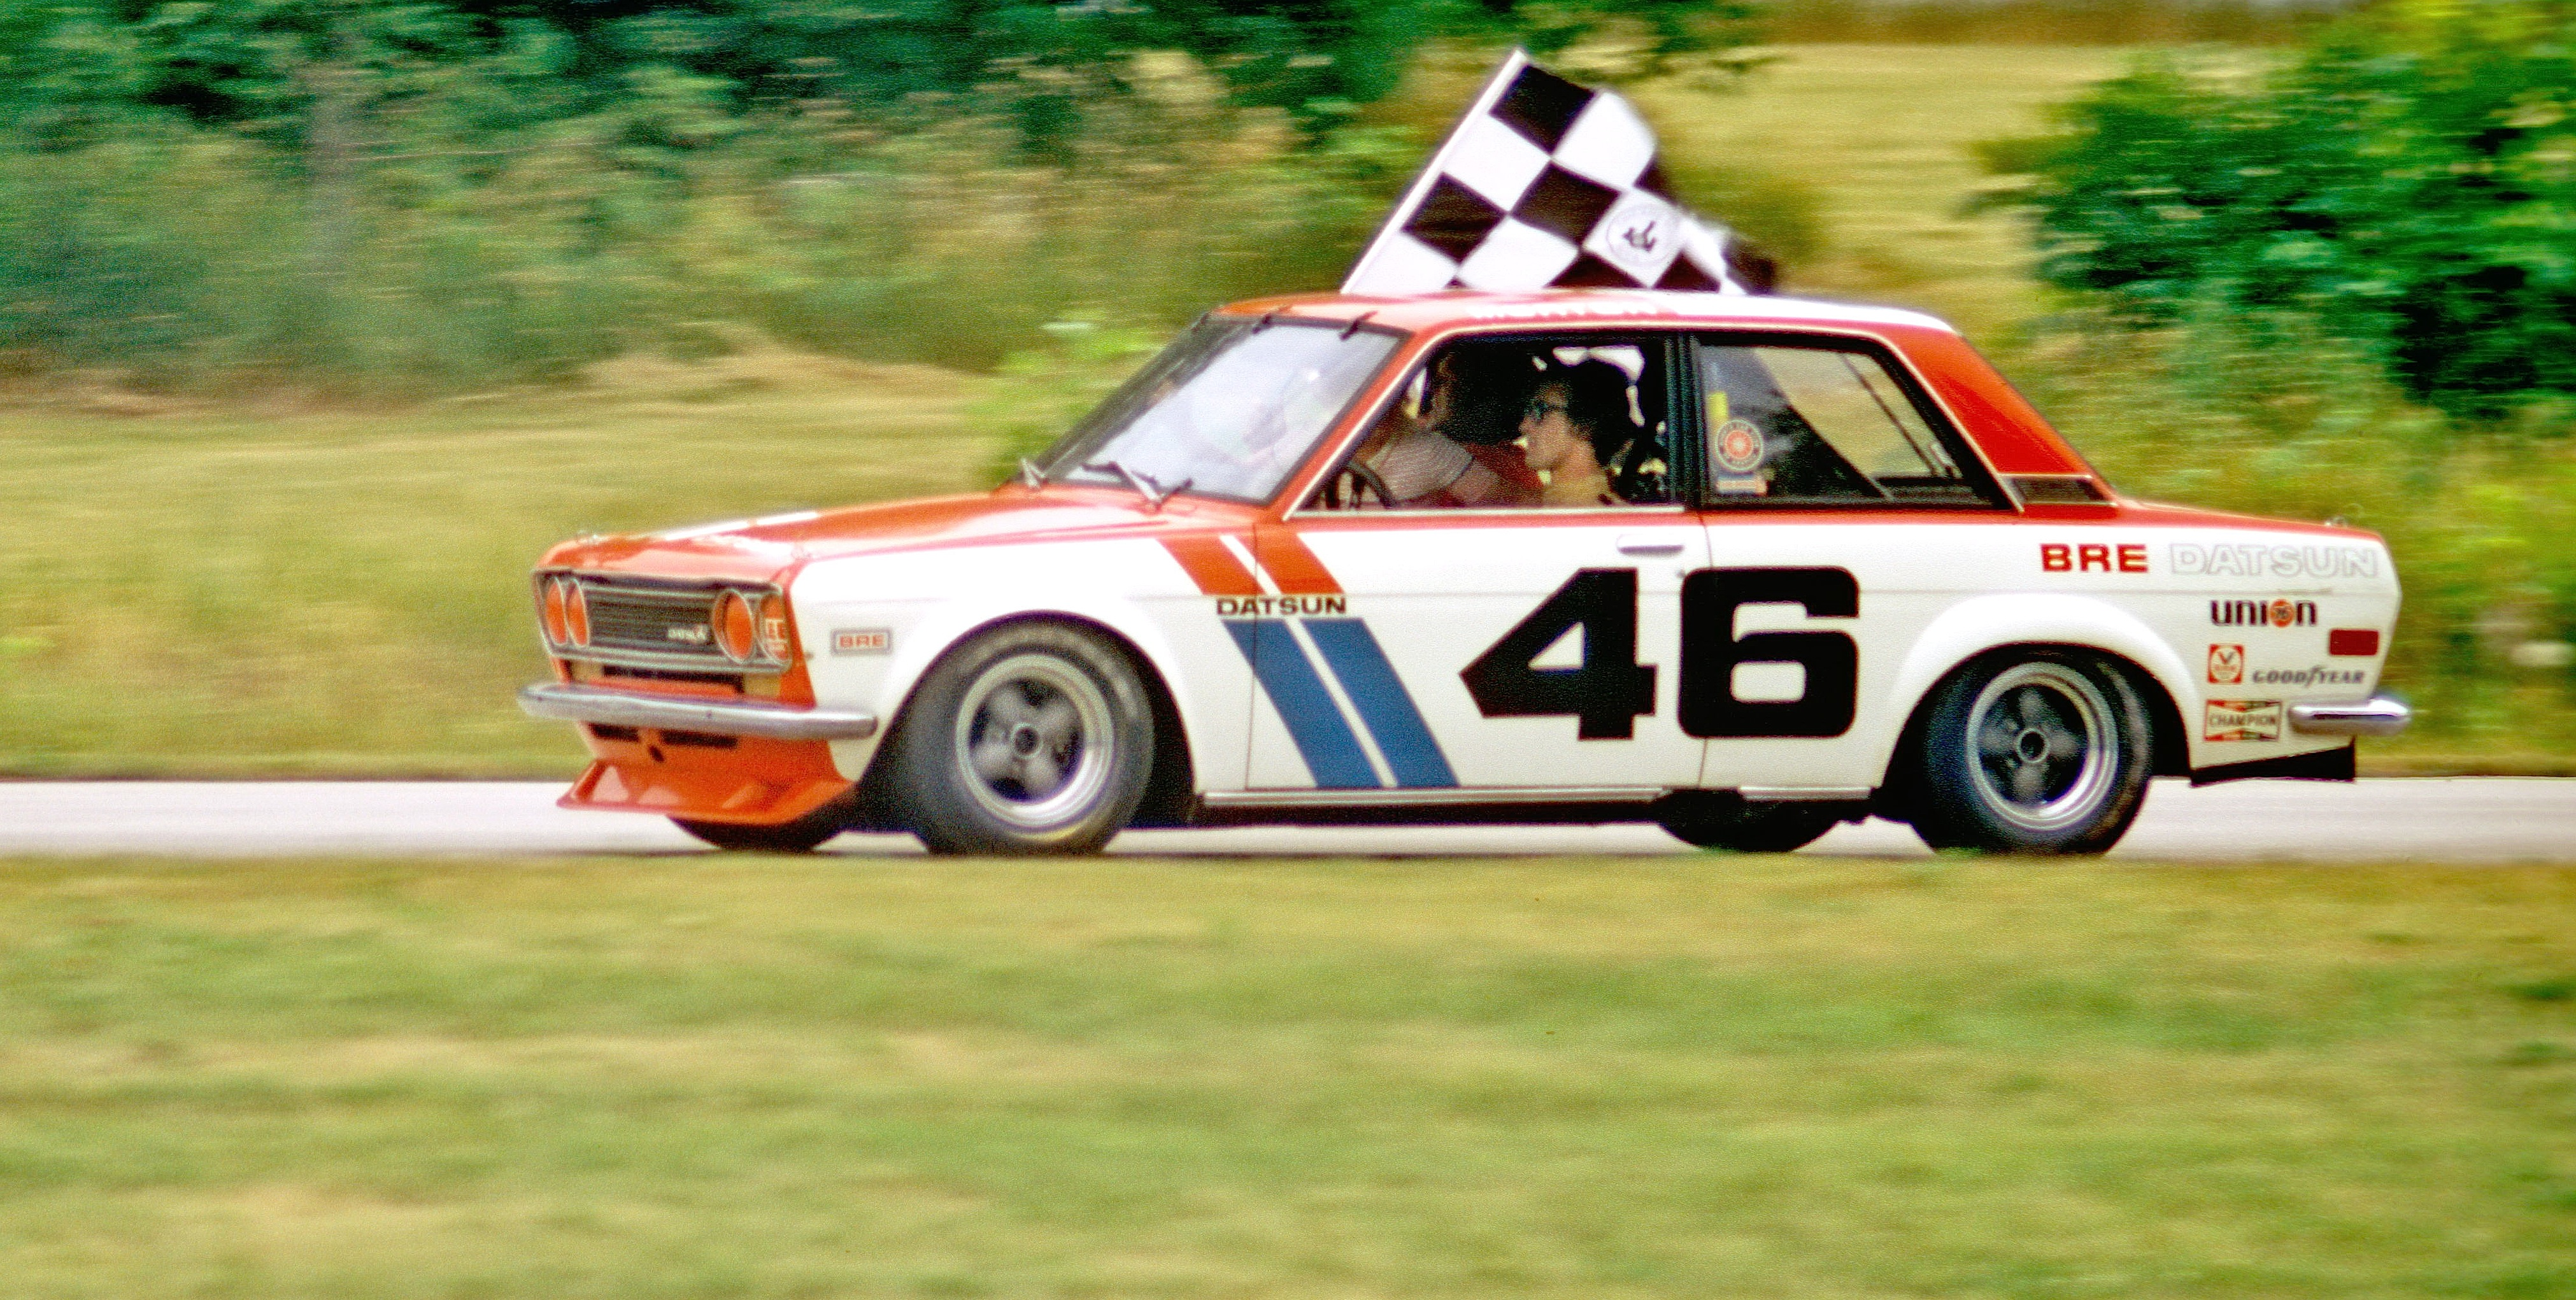 Vintage Datsun Racing The Stainless Steel Carrot